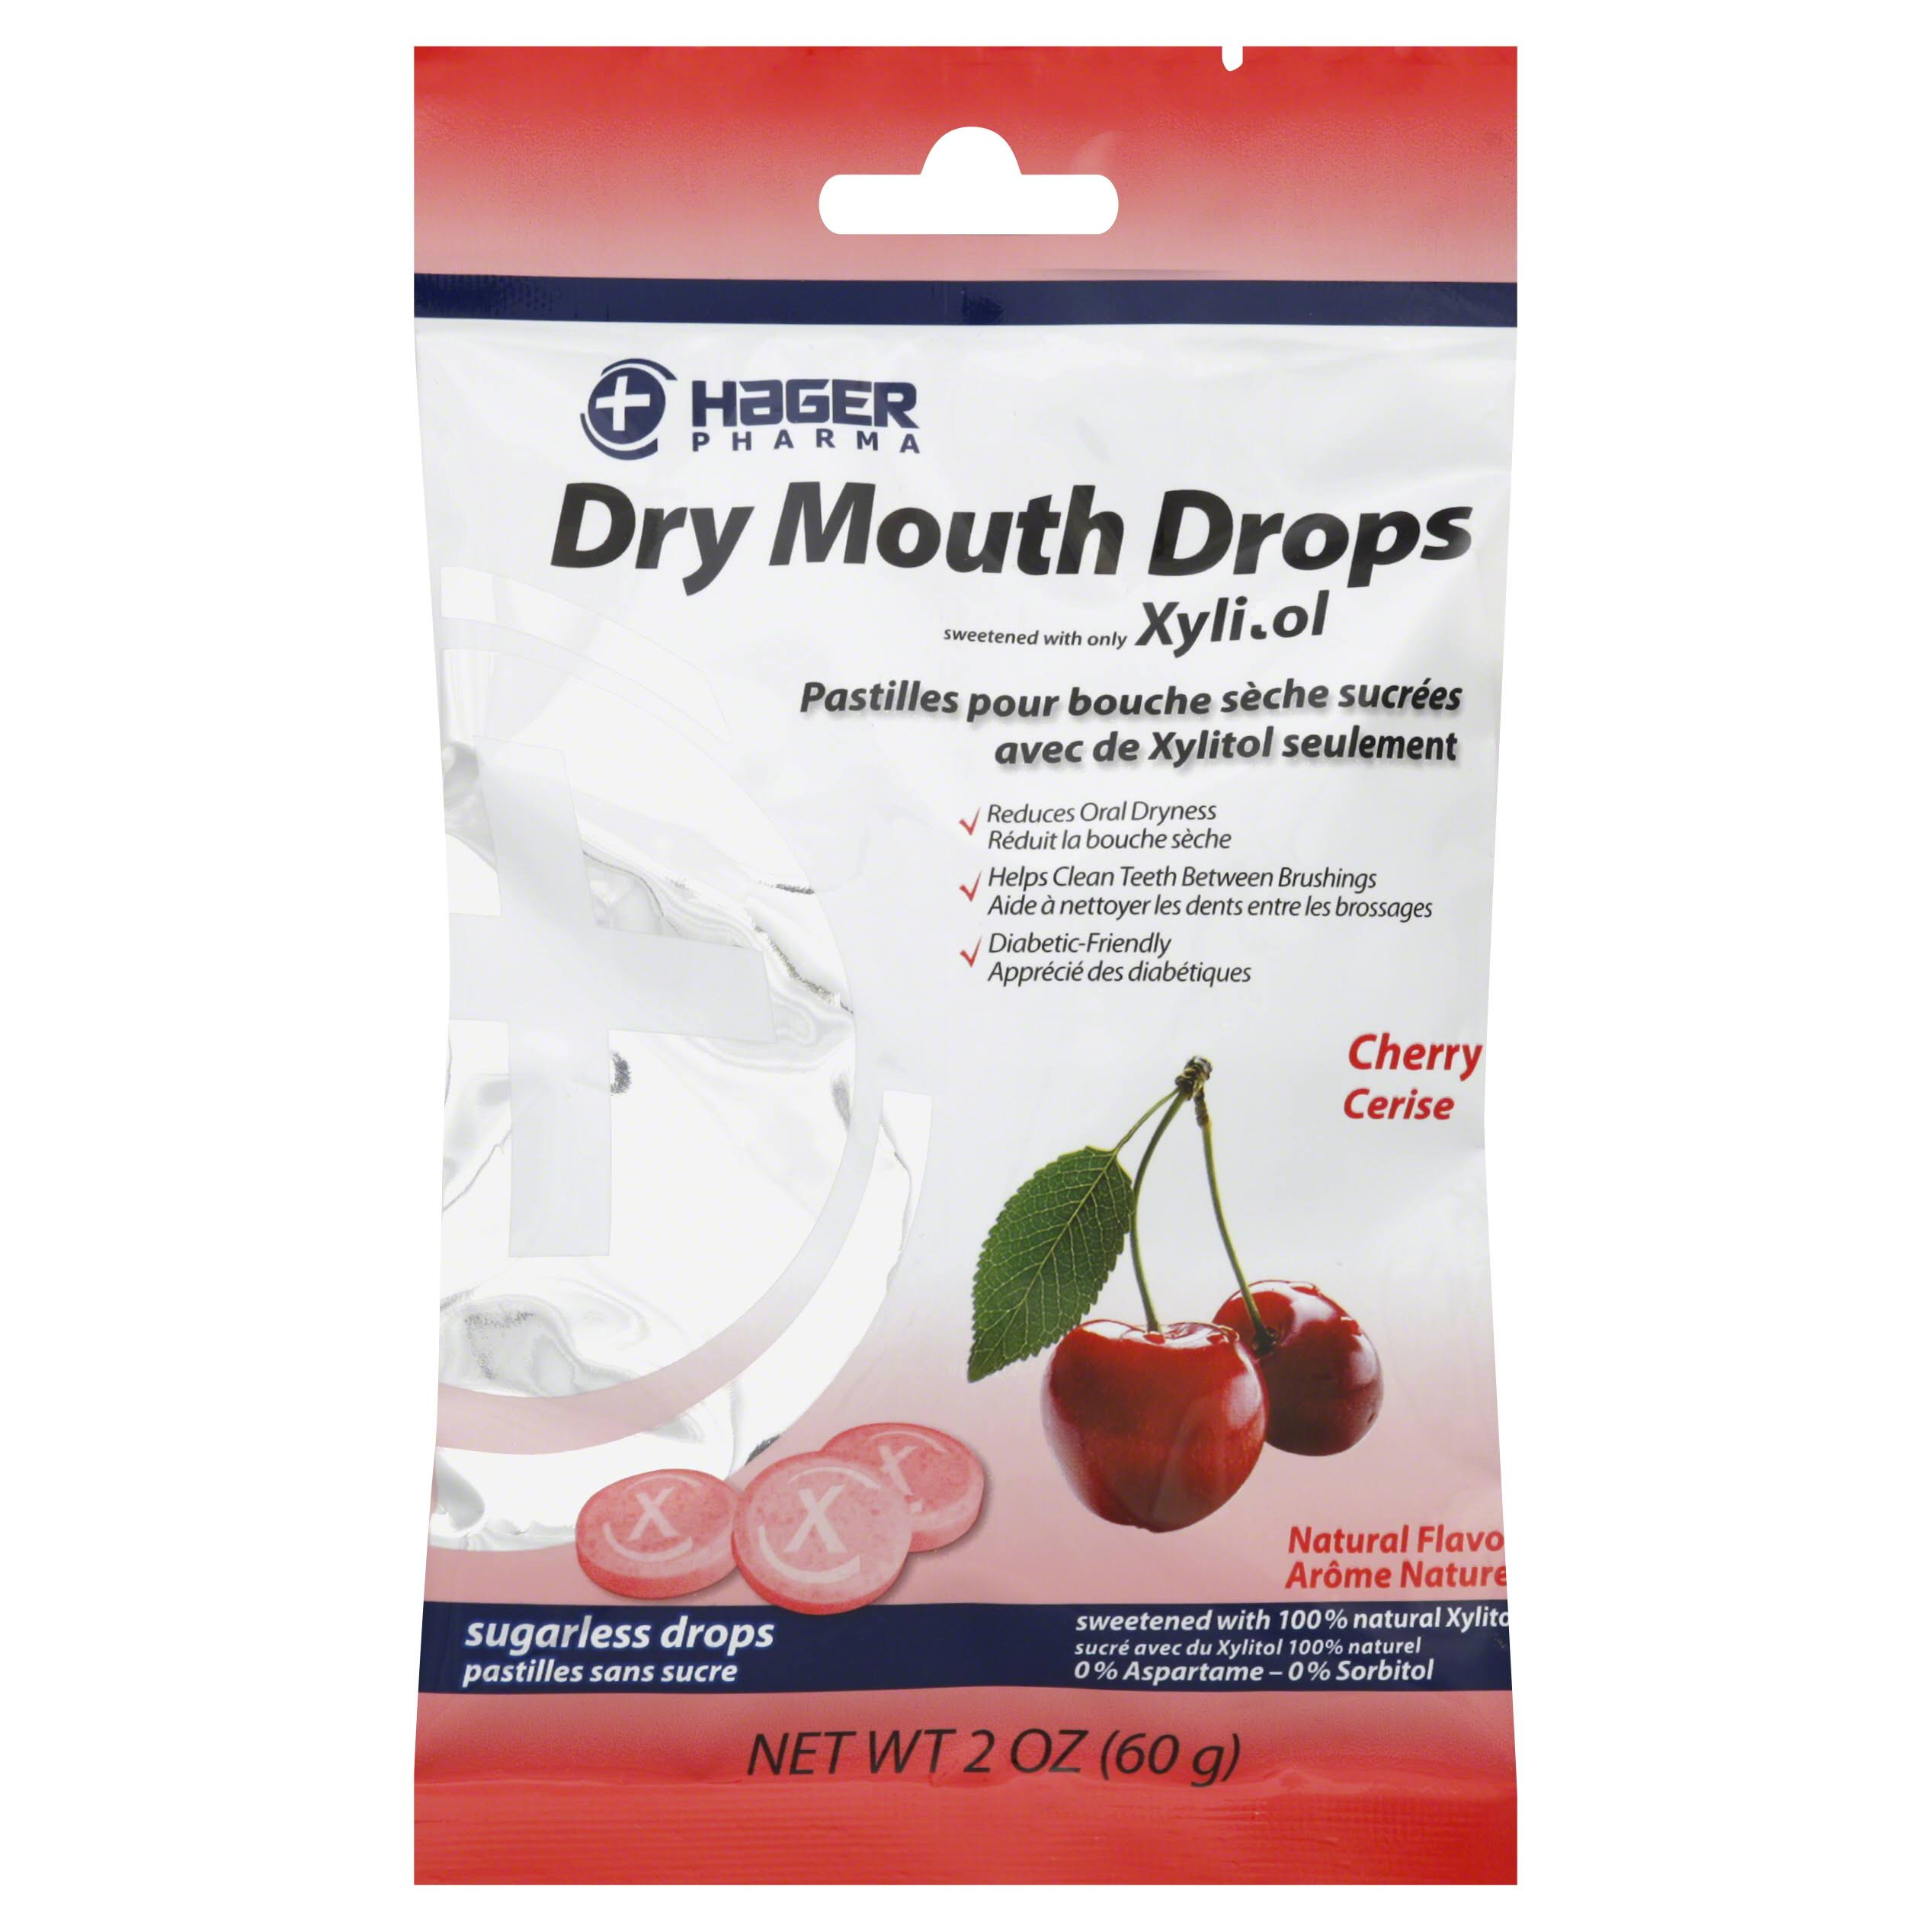 Hager Pharma Dry Mouth Drops - Cherry, 60g